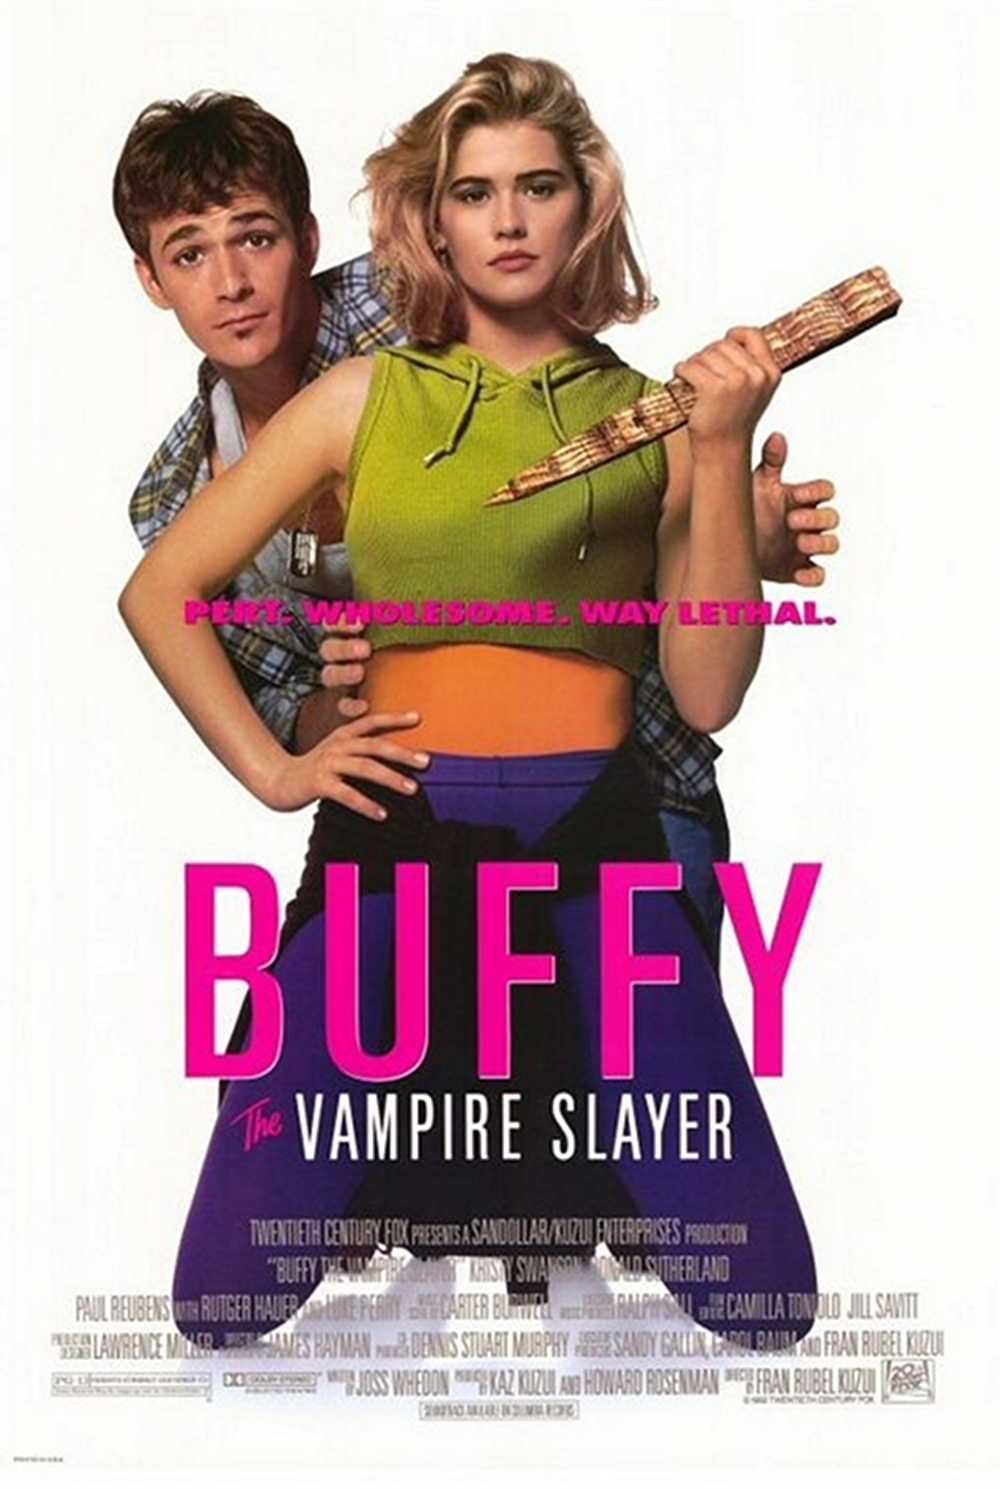 Buffy-the-Vampire-Slayer-poster.jpg